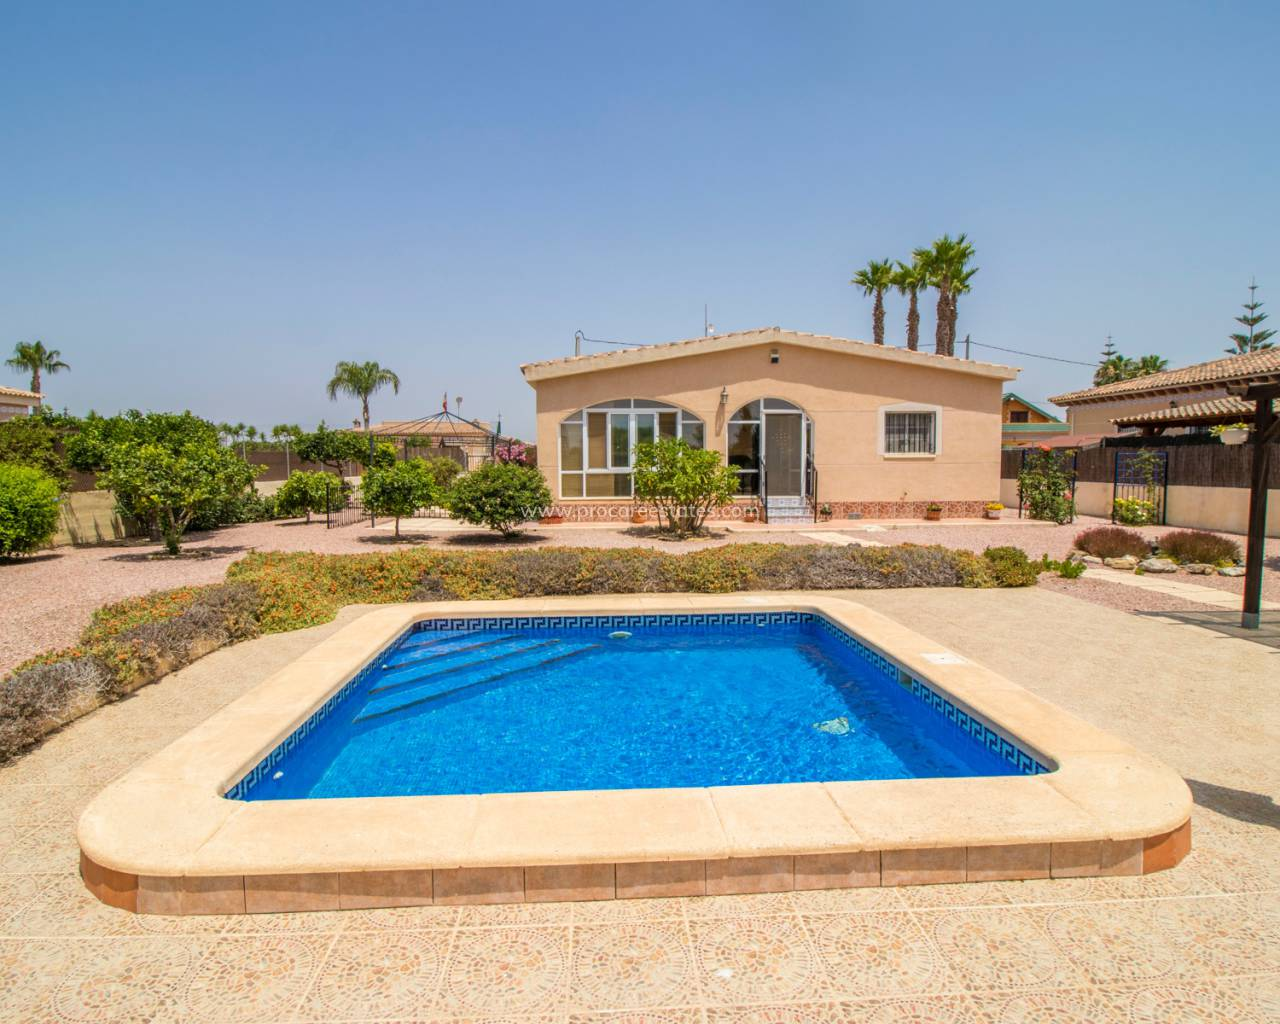 Reventa - Country Property - Catral